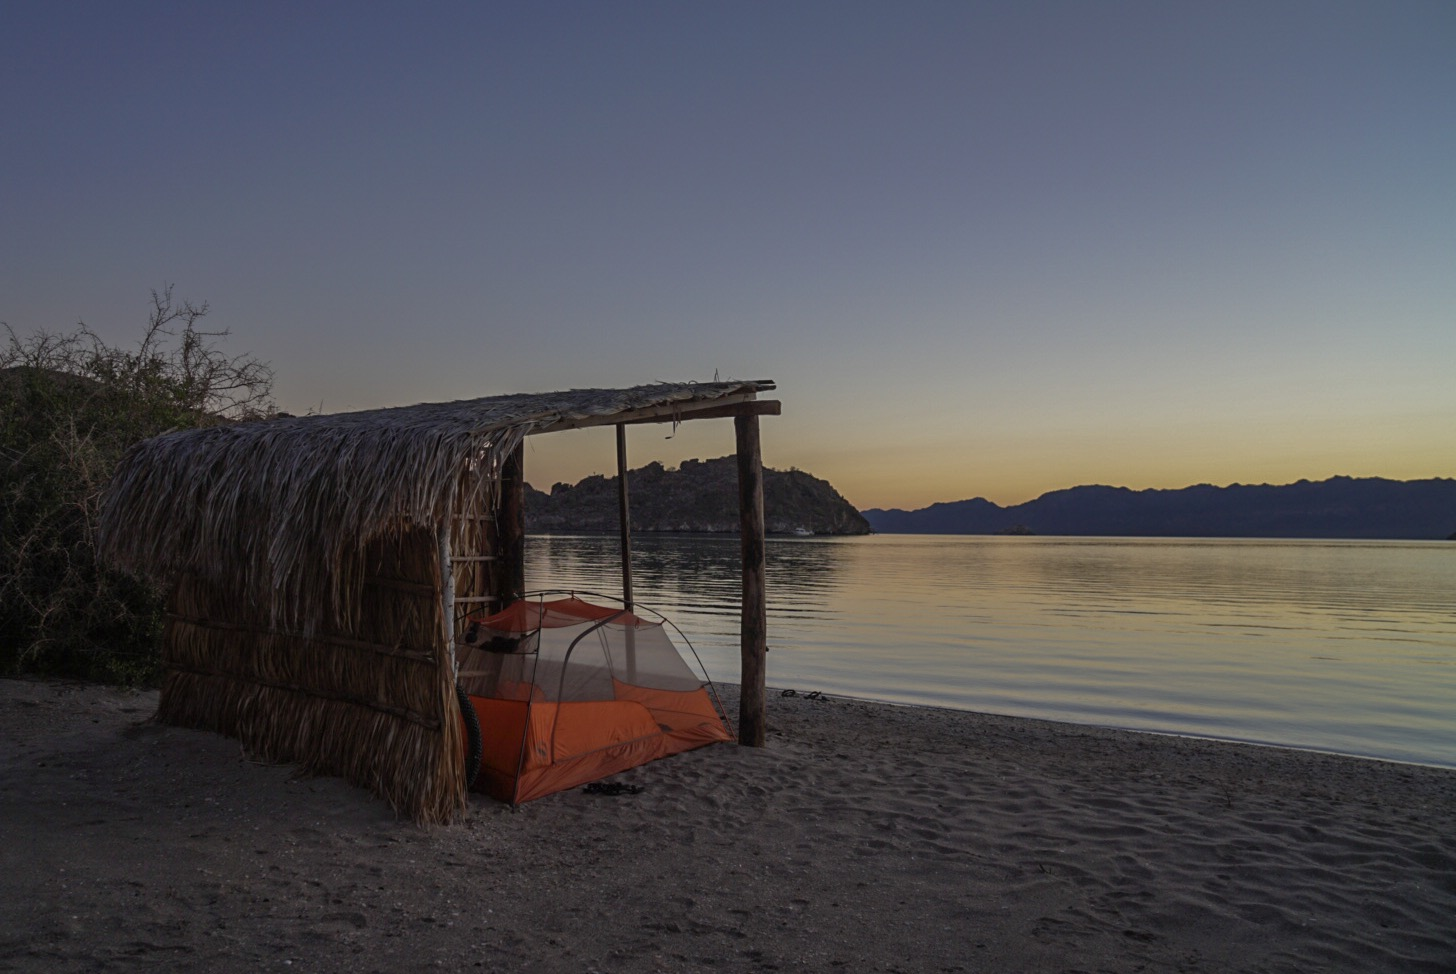 Our tent on the beach at Bahia Concepcion